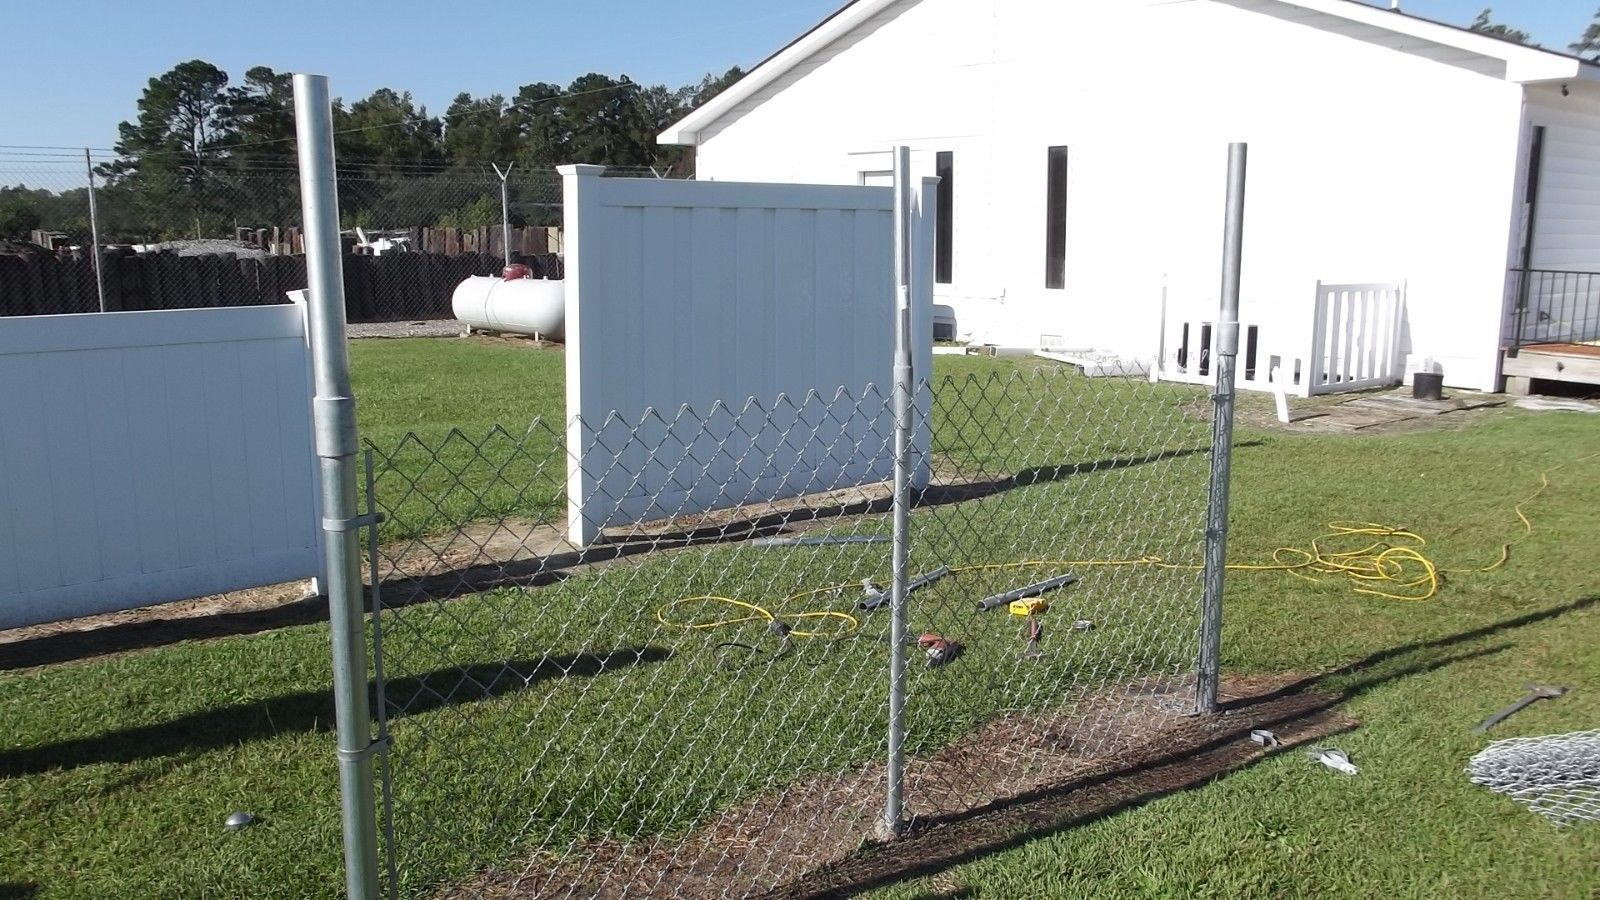 Details About Extend A Fence Chain Link Raise Fence Up To 2 Line Post Kit 1 5 8 Add Height Chain Link Fence Fence Height Extension Fence